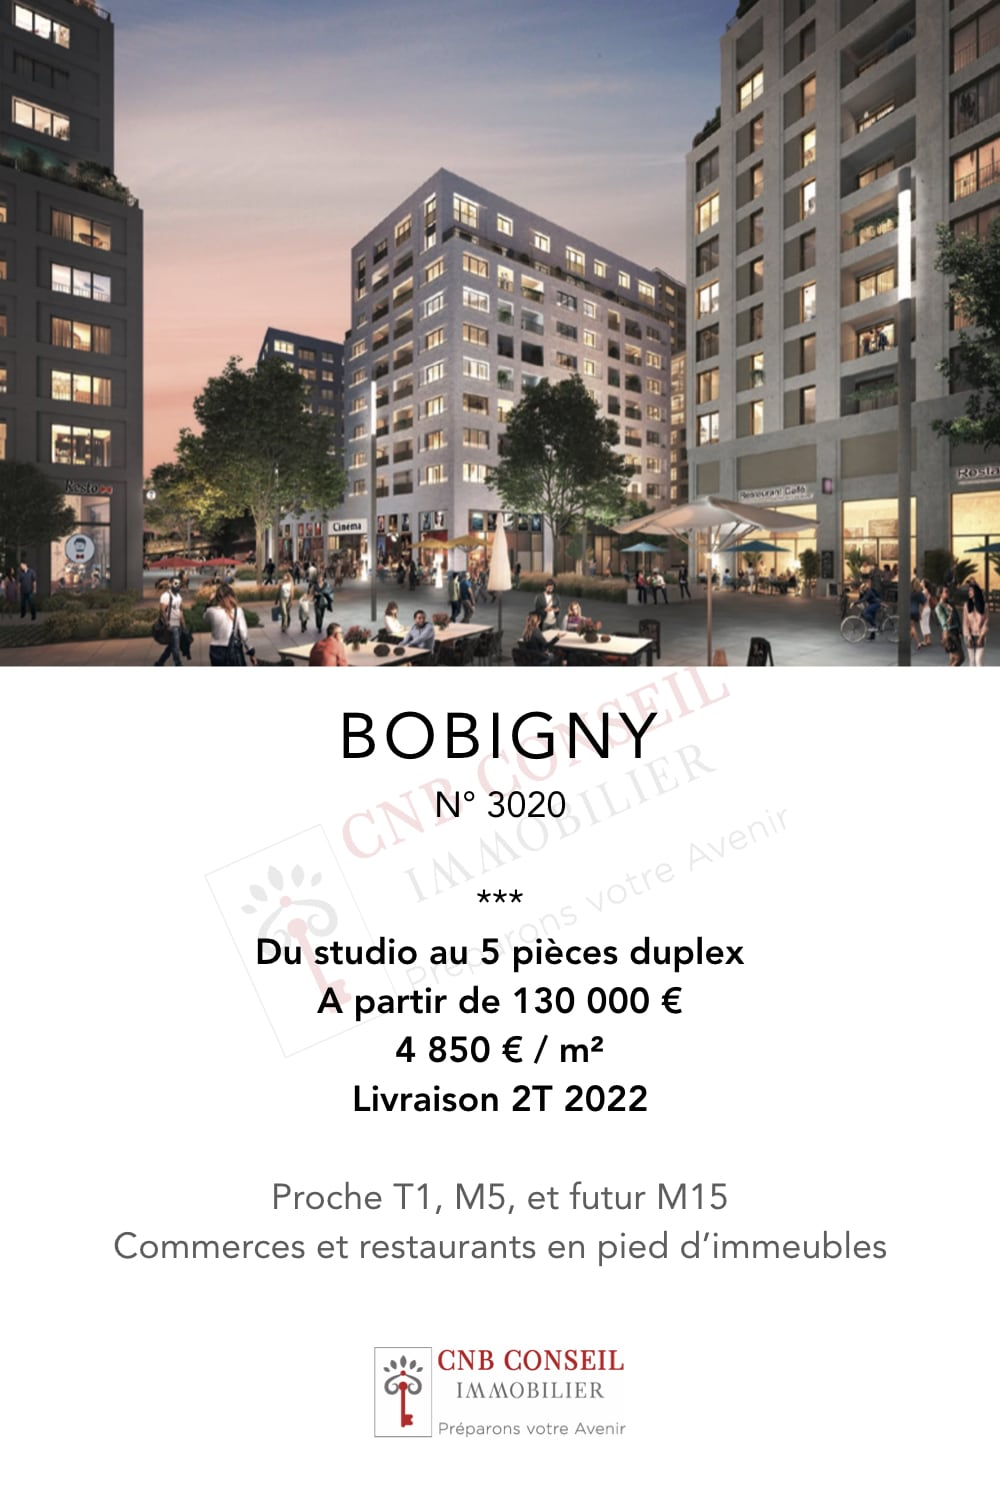 CNB-Conseil-Immobilier-Achat-Investissement-Pret-Neuf-Bobigny